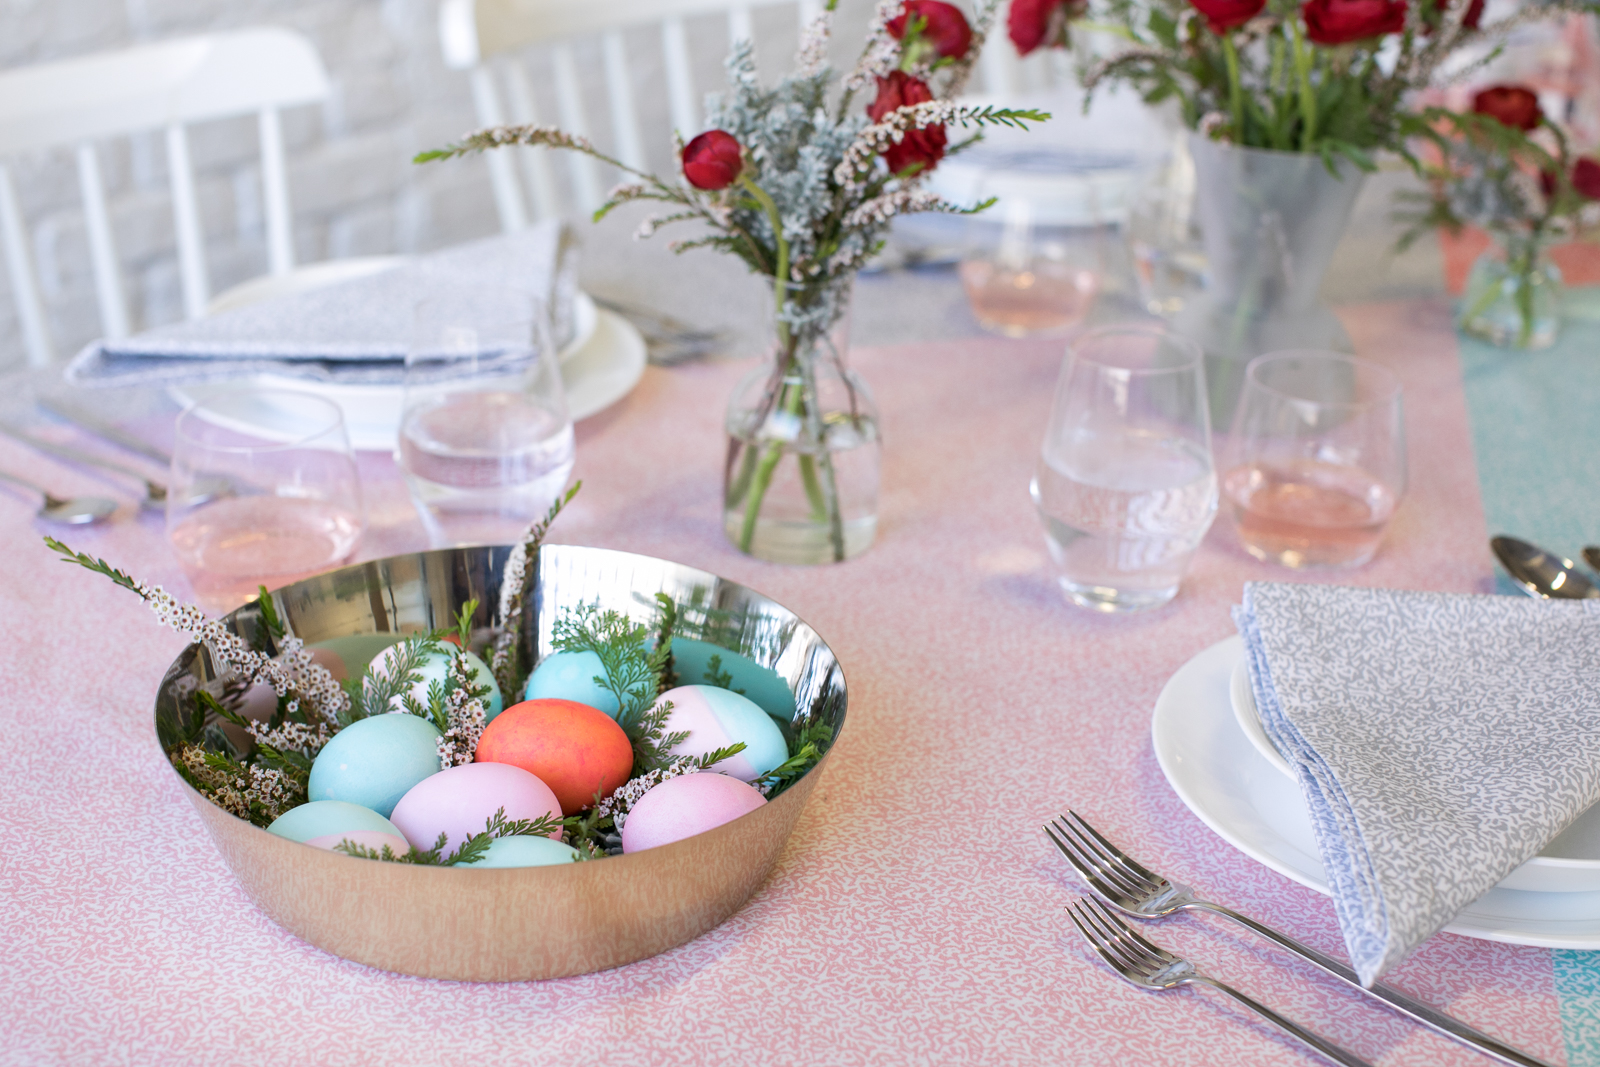 Unison_MothersDayTable_Web-20